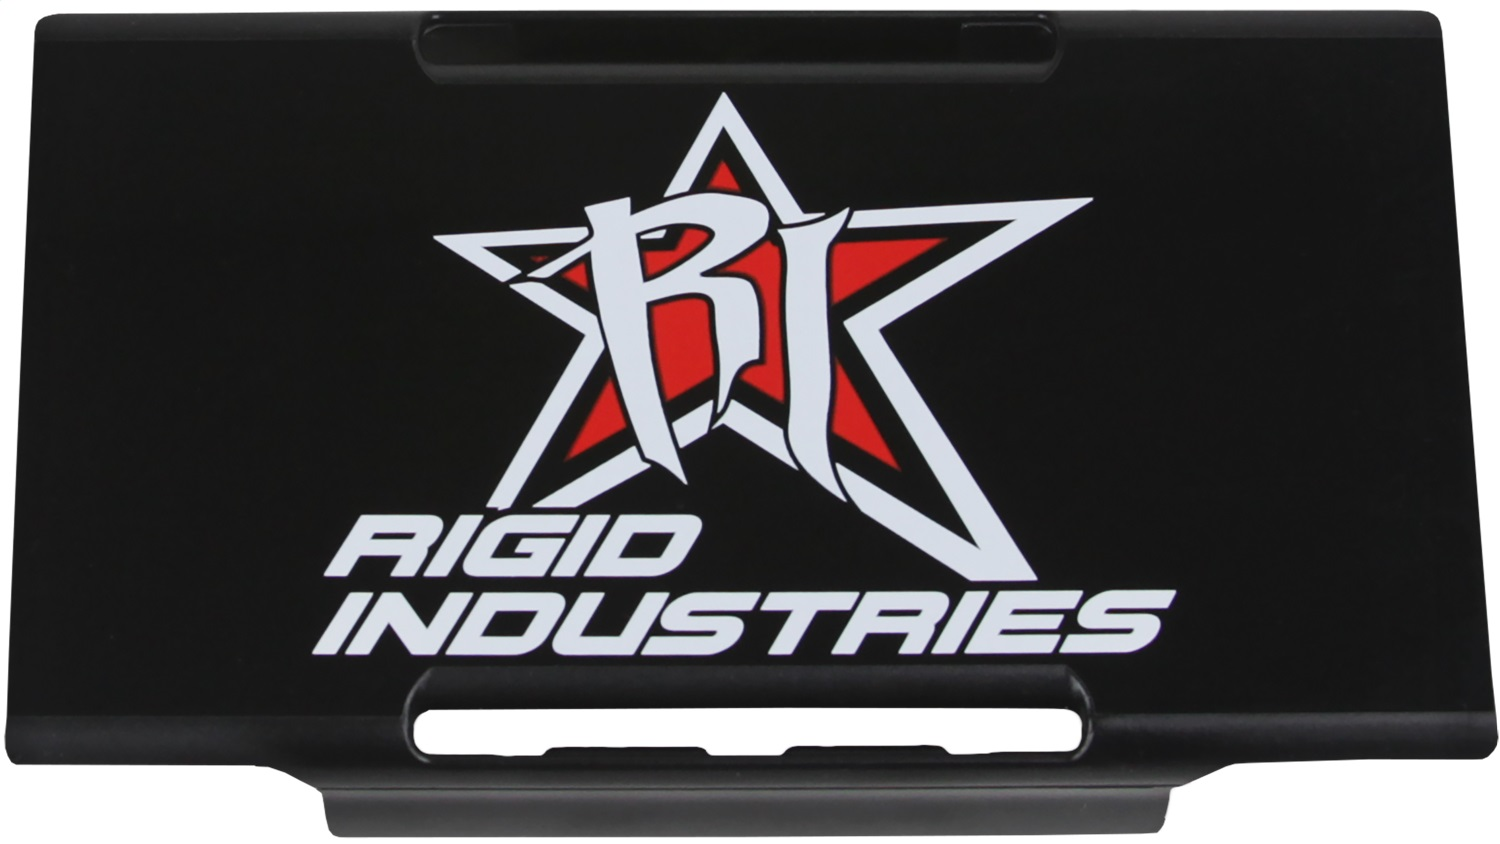 Rigid Industries 10691 EM Series Light Cover